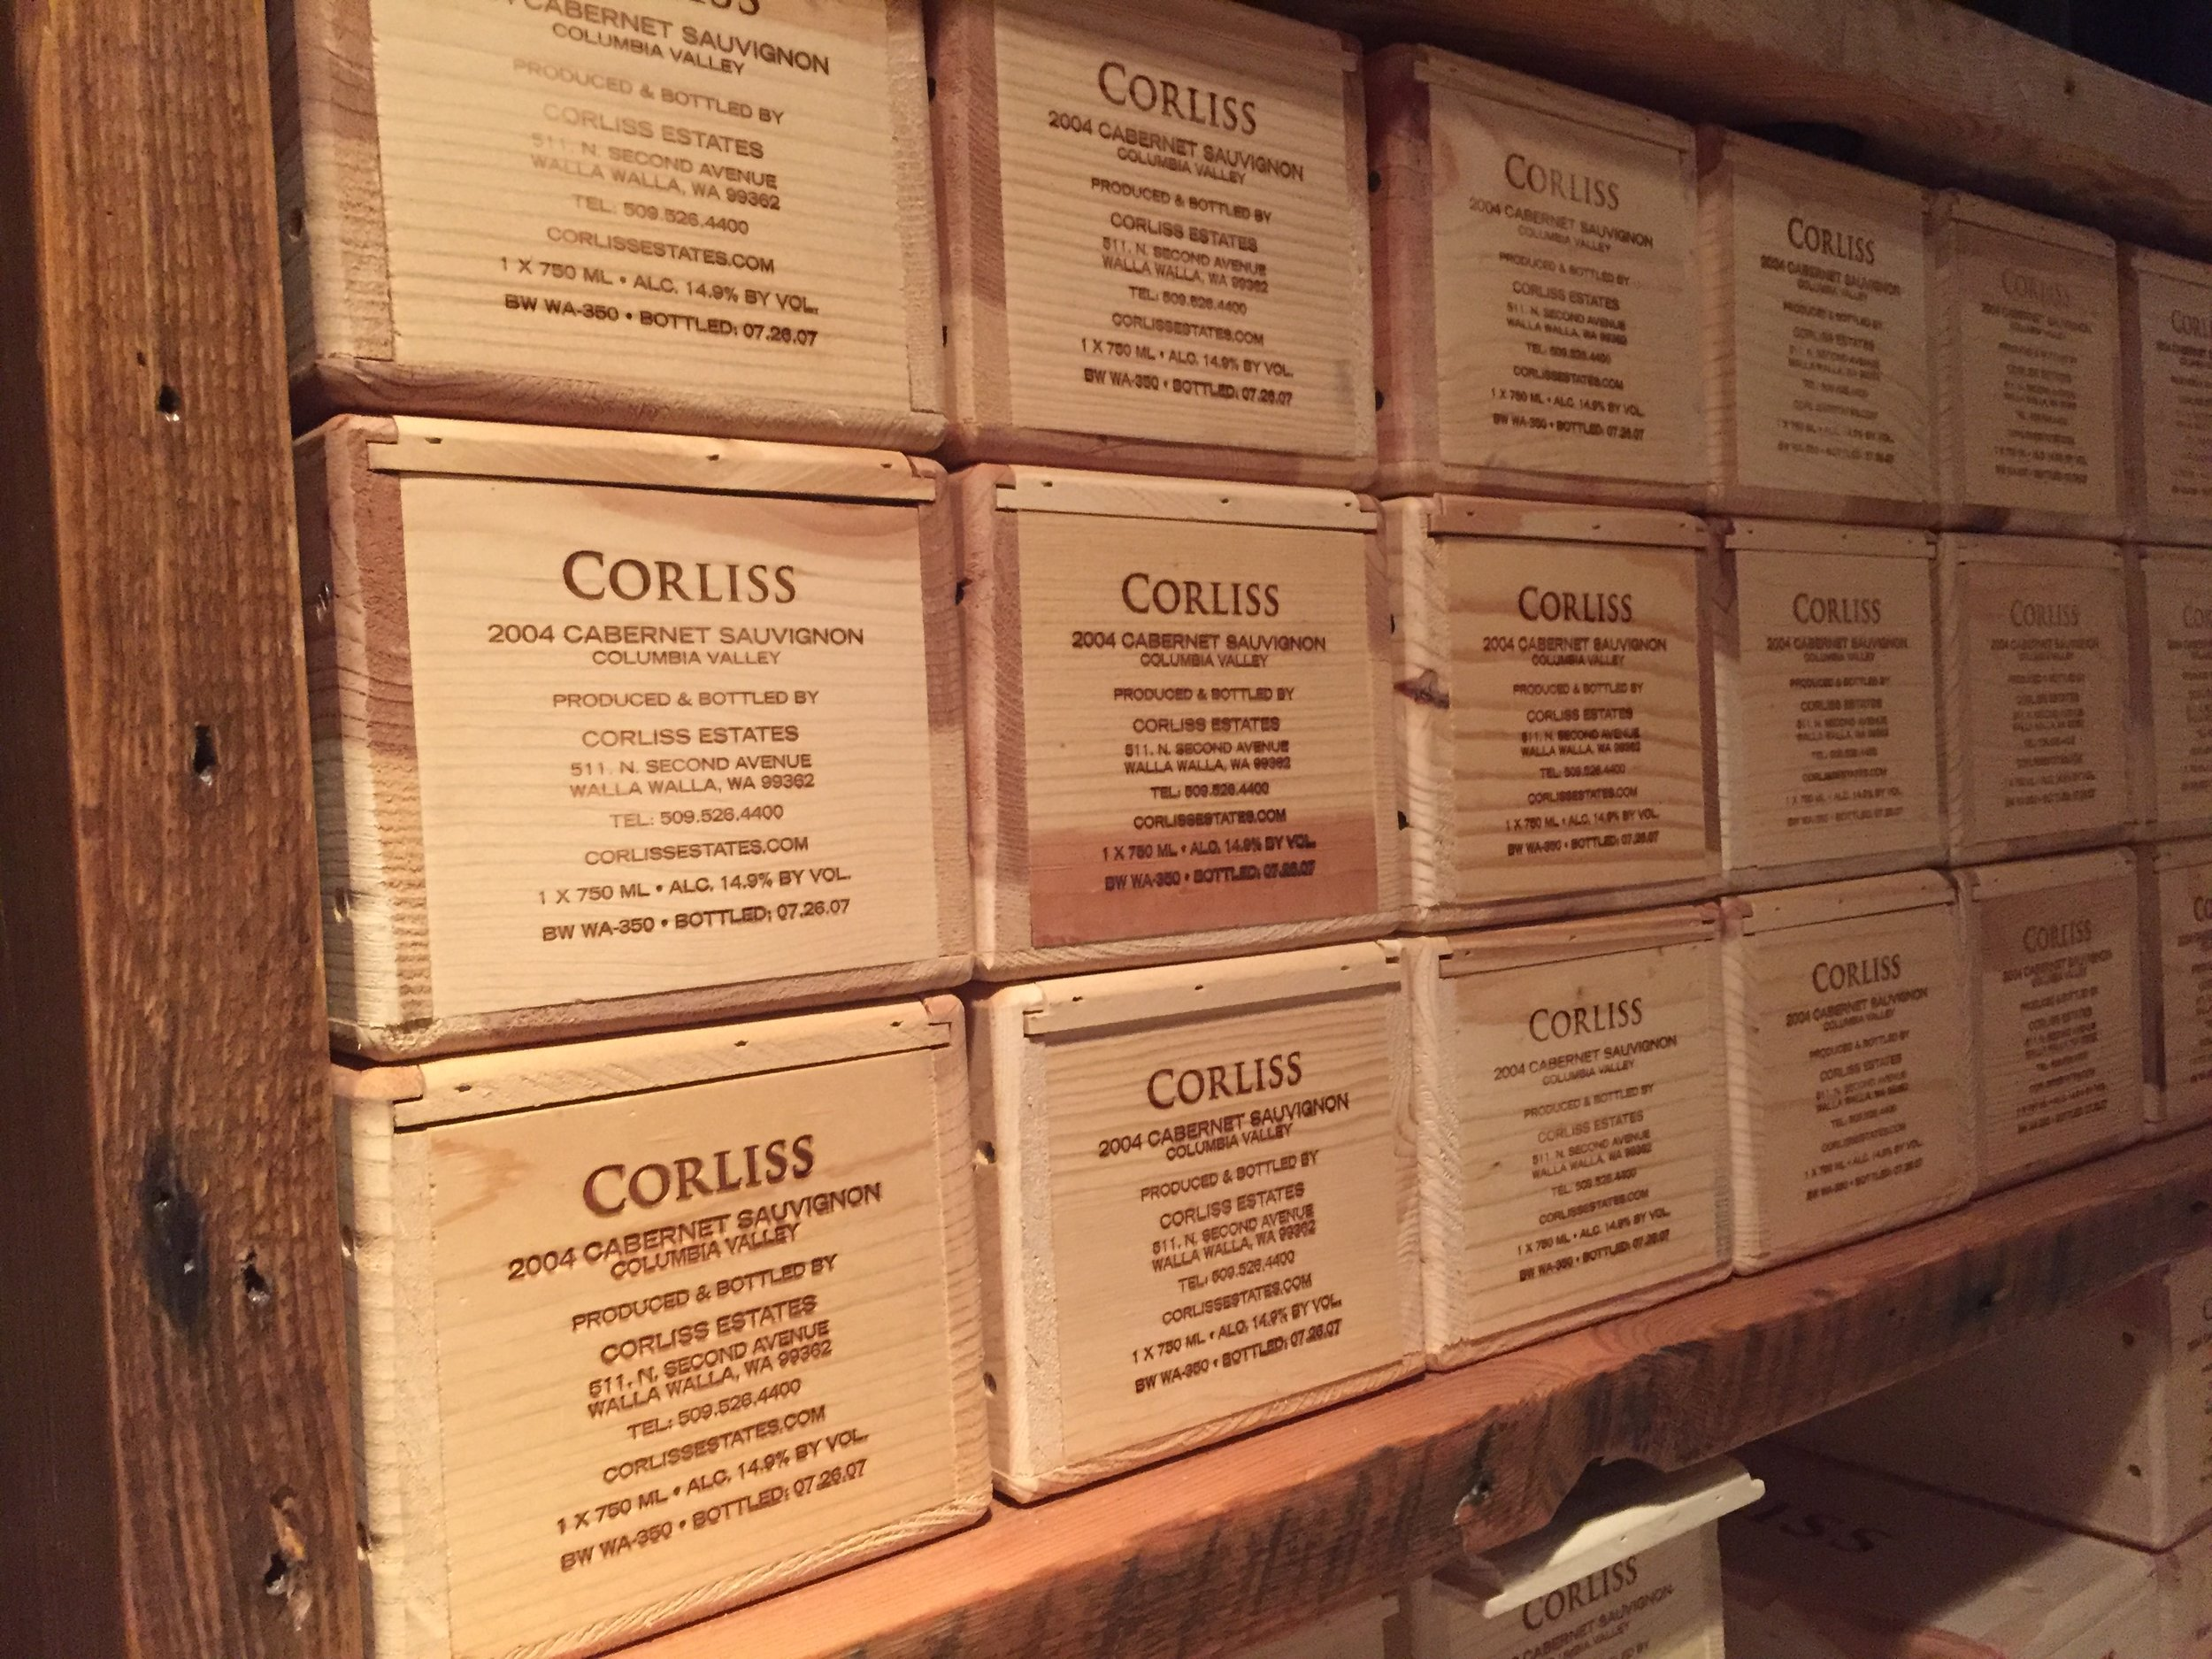 Corliss Estates keeps its back library down in its own wine cave cellar below the facility.